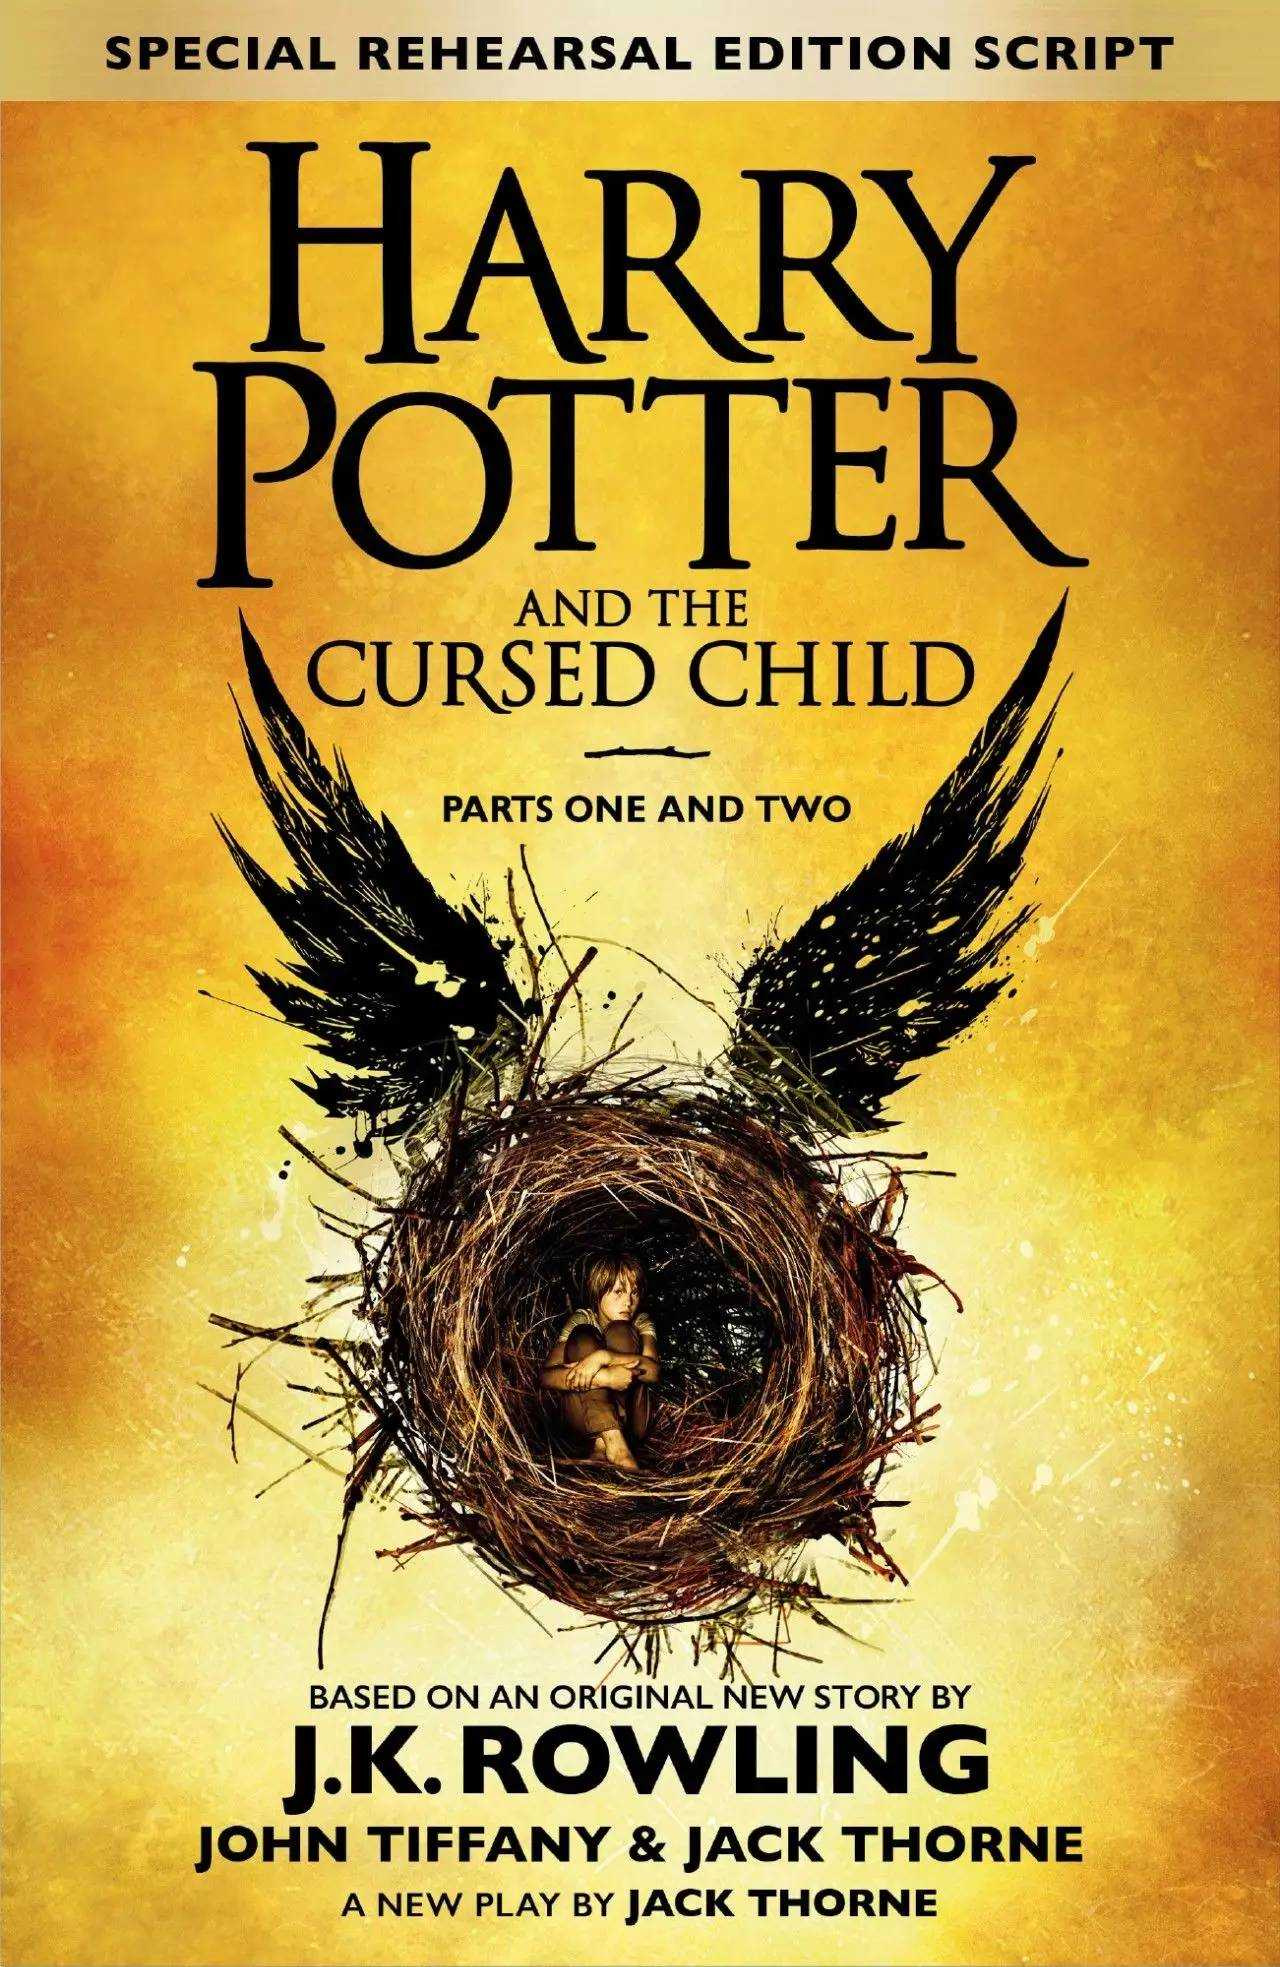 Harry Potter and the Cursed Child - Parts I & II (Special Rehearsal Edition Script)